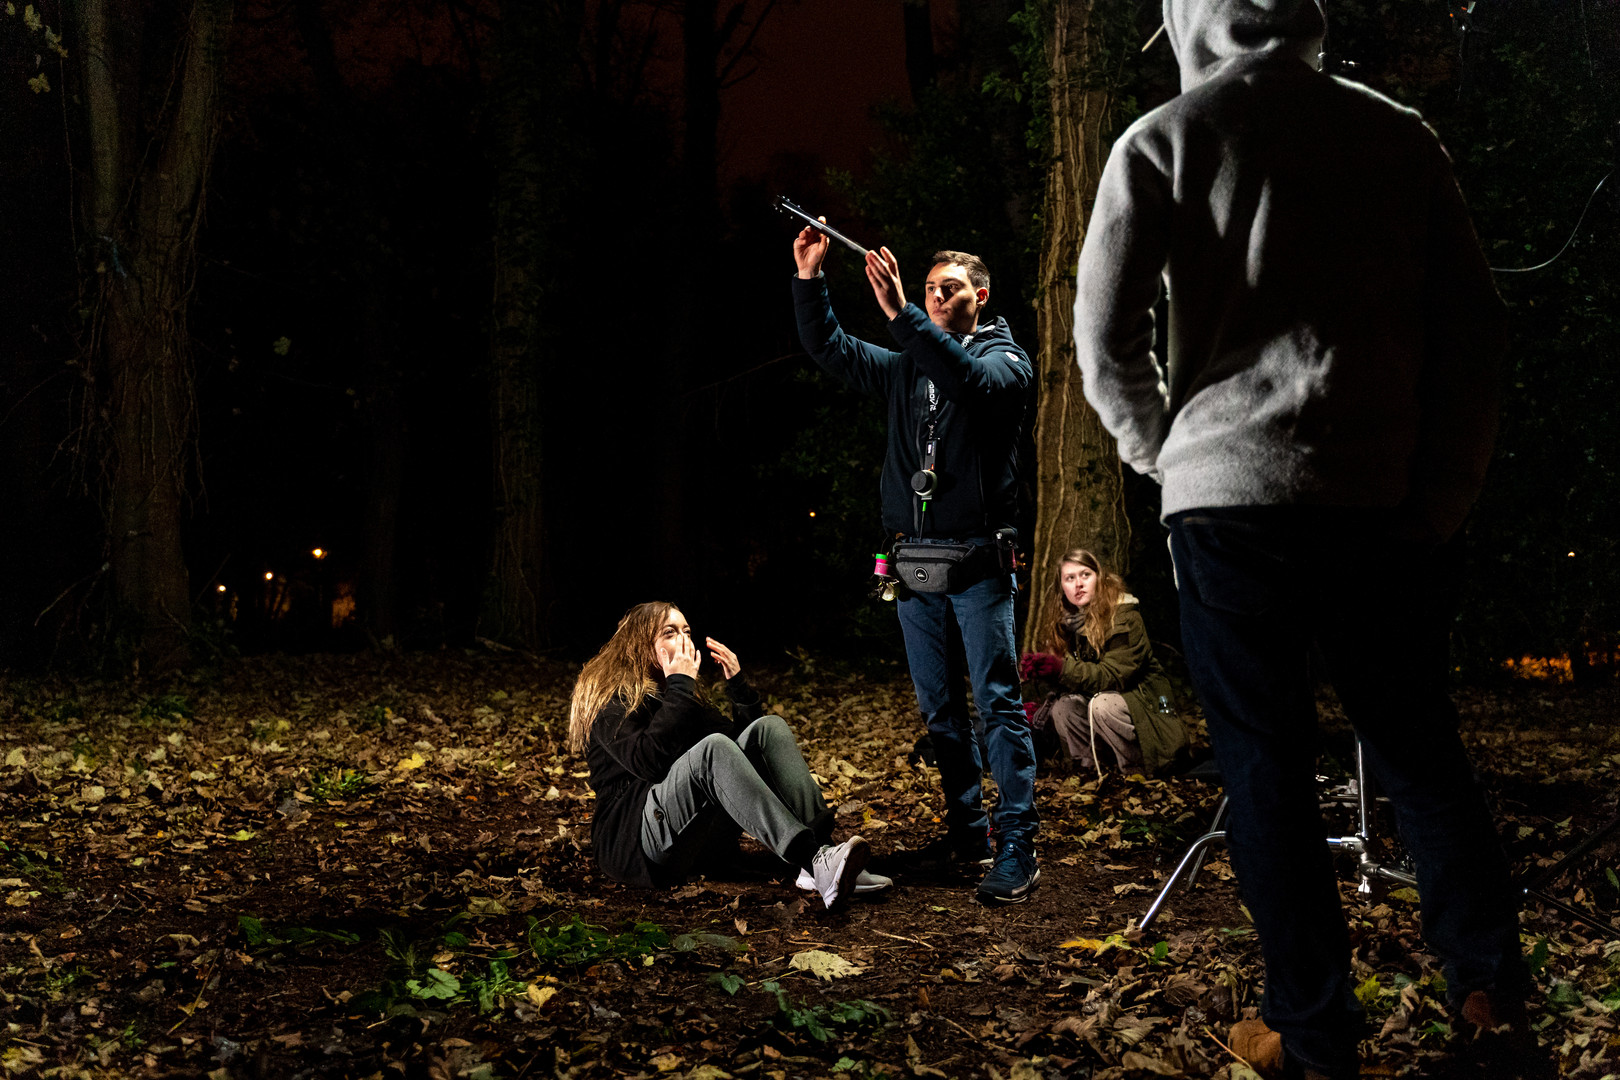 Forest filming